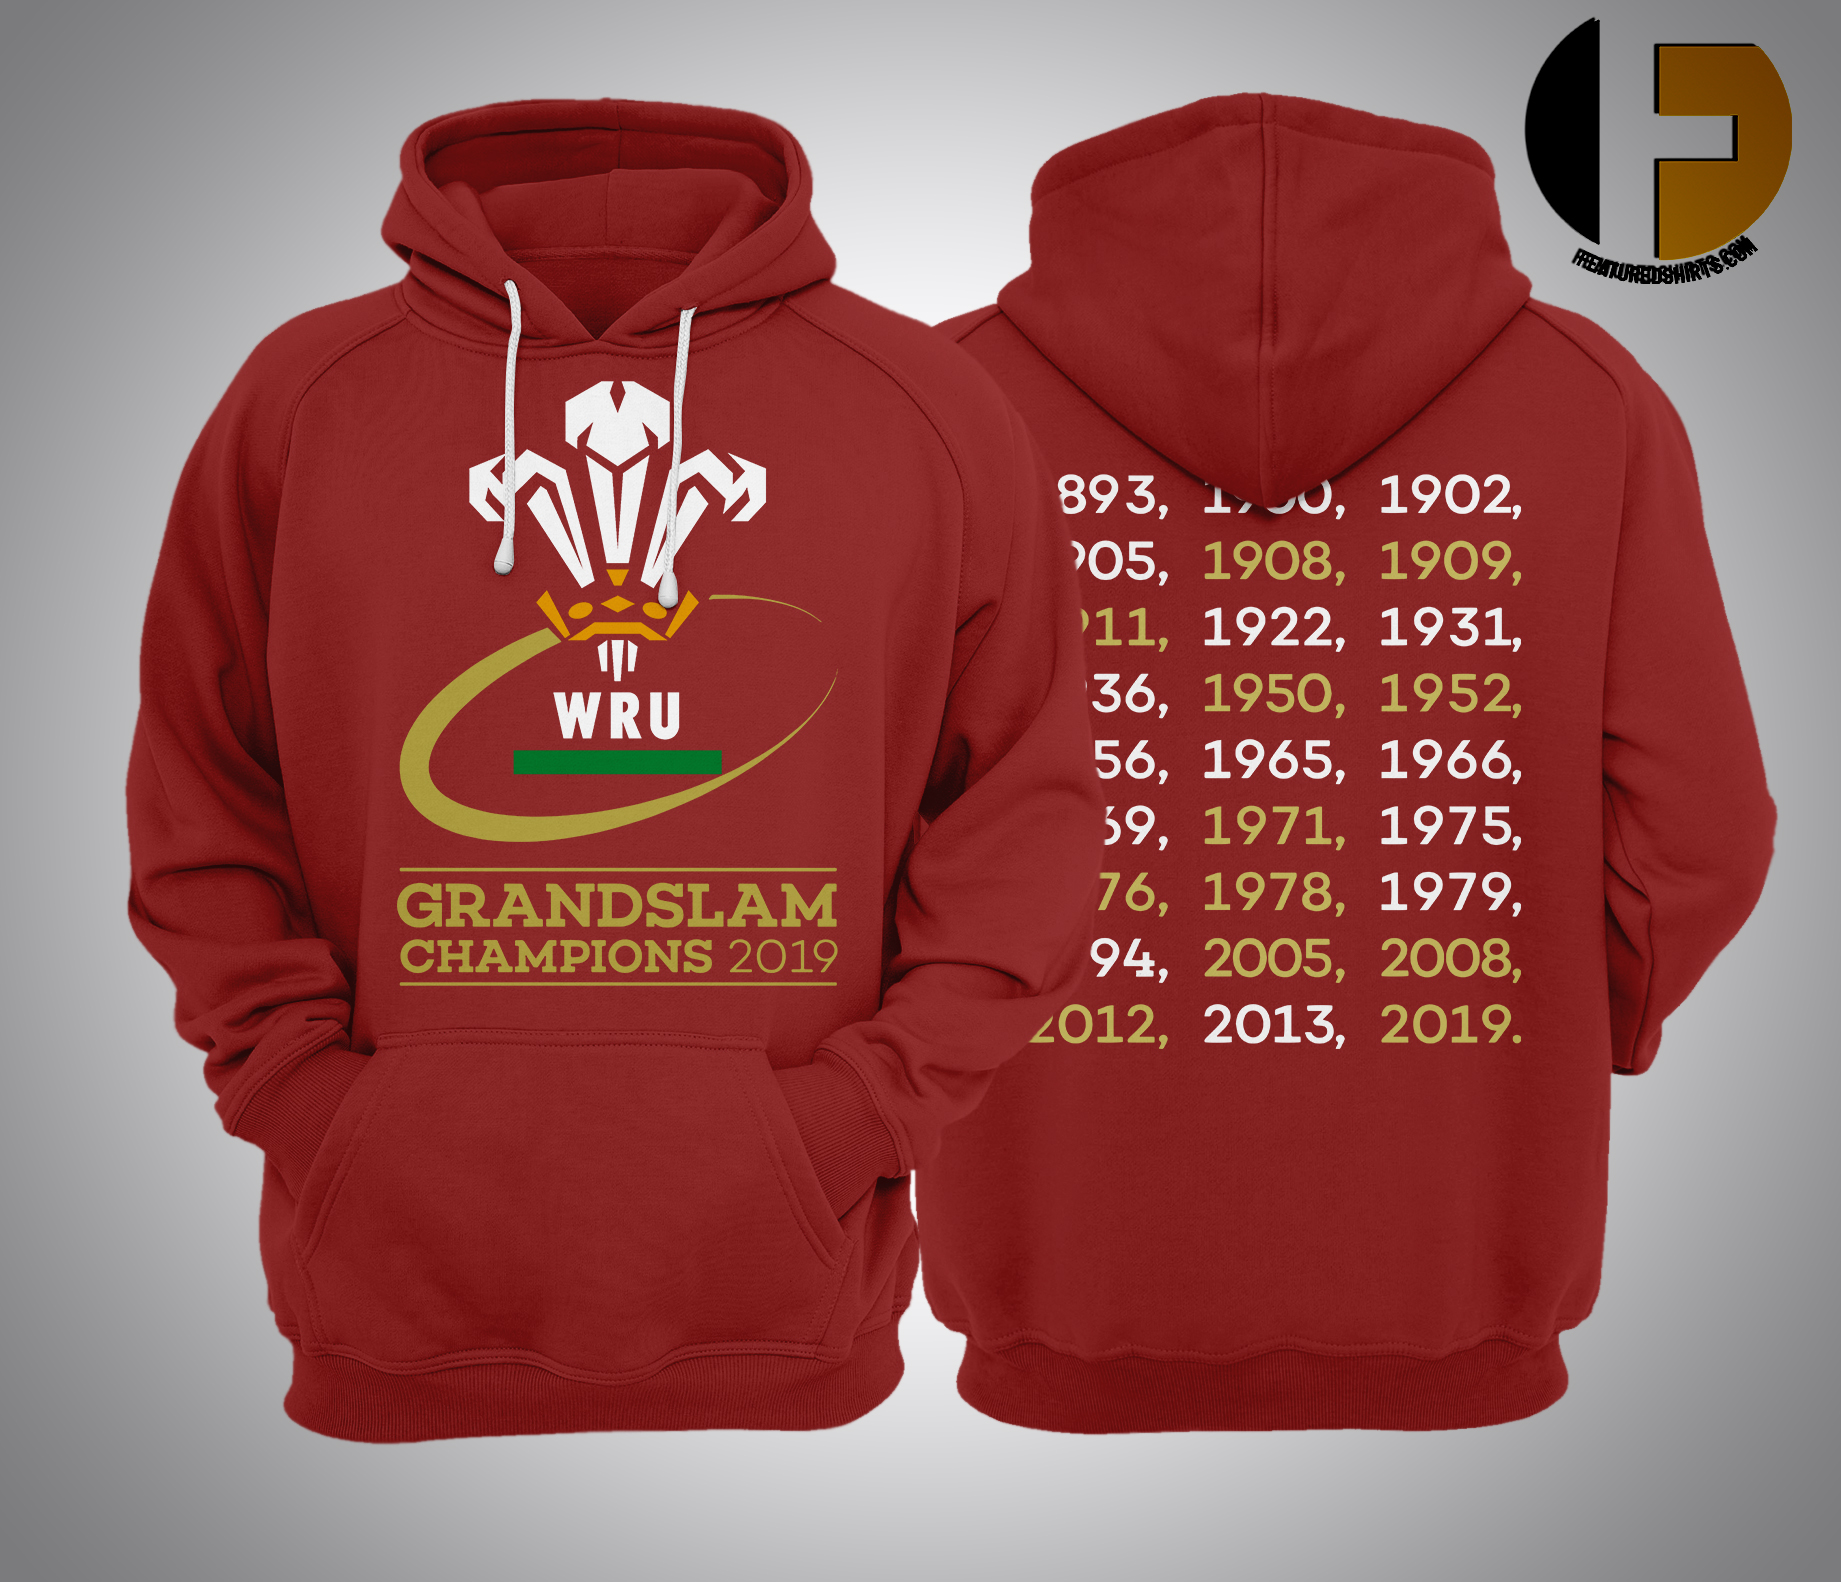 Welsh Rugby 2019 Grand Slam Champions Hoodie